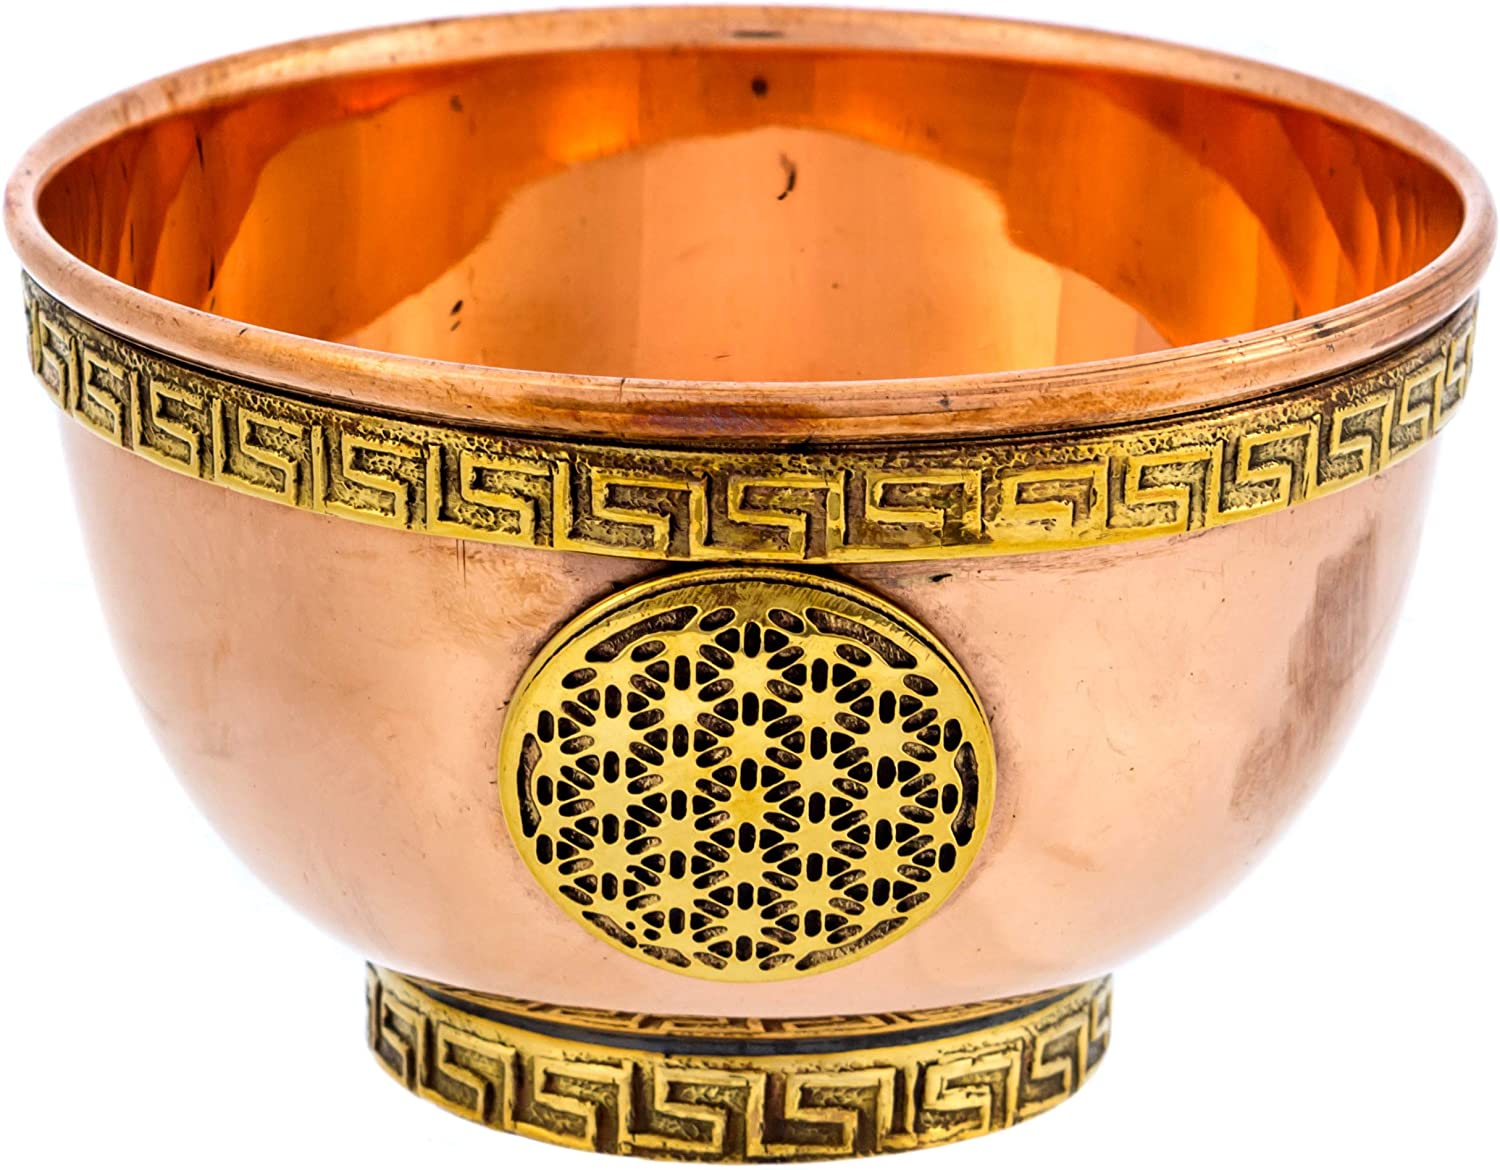 Alternative Imagination Flower of Life Copper Offering Bowl for Altar Use, Rituals, Incense, Smudging, Decoration, and More